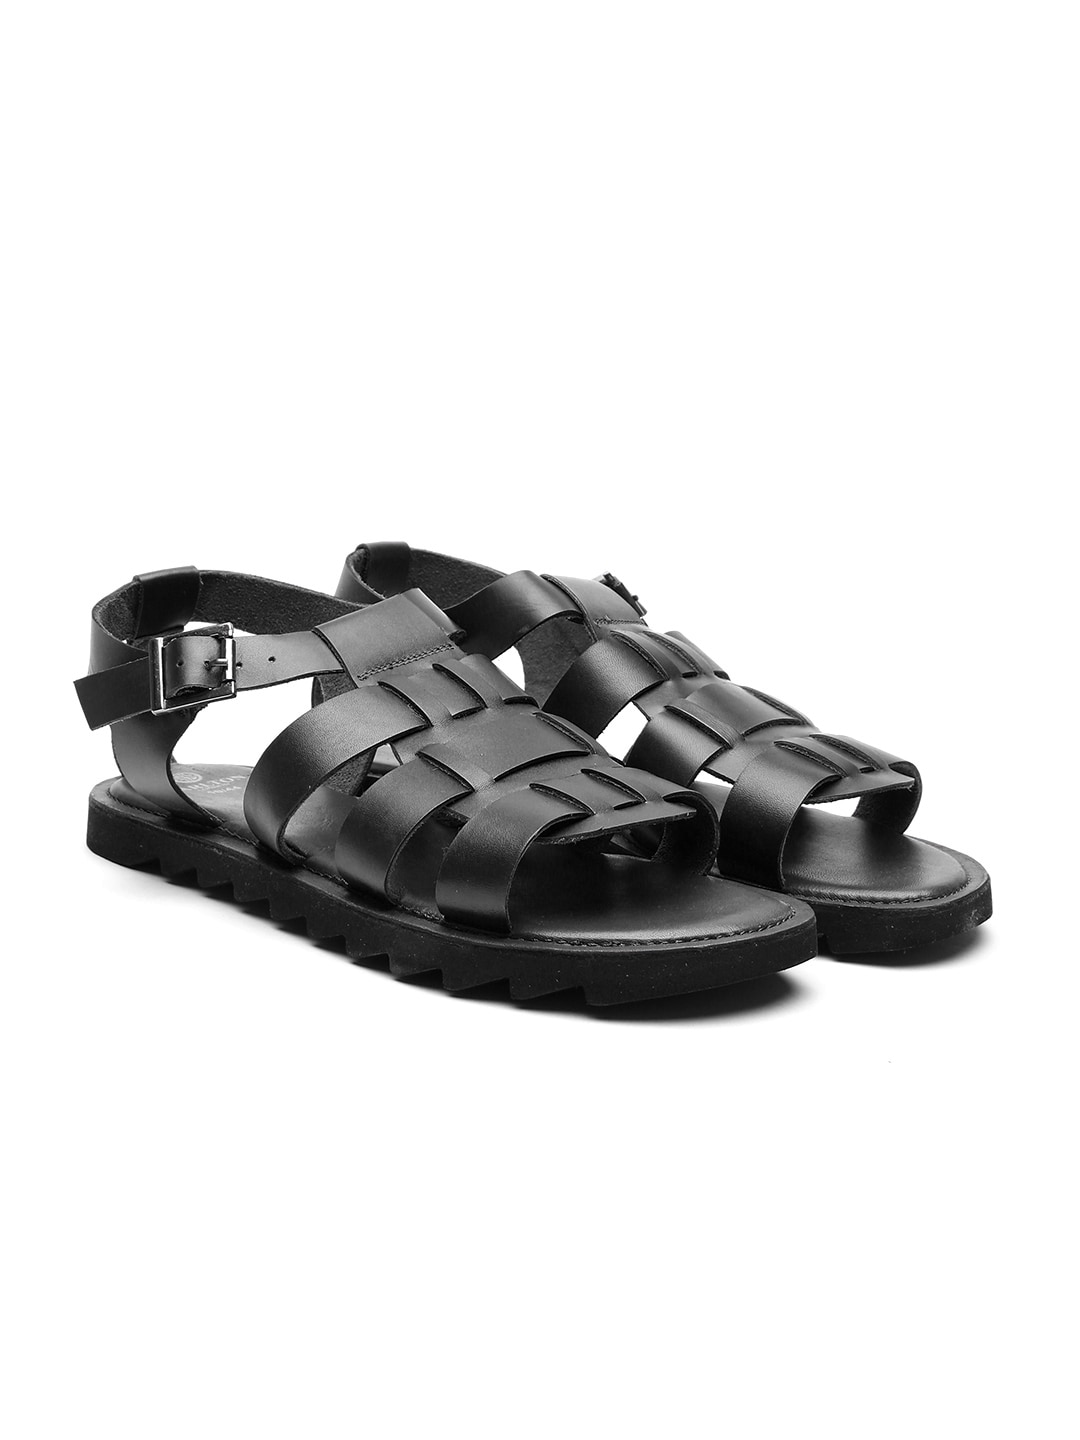 e8551aeb2cb0 Men Sandals Flip Flops - Buy Men Sandals Flip Flops online in India